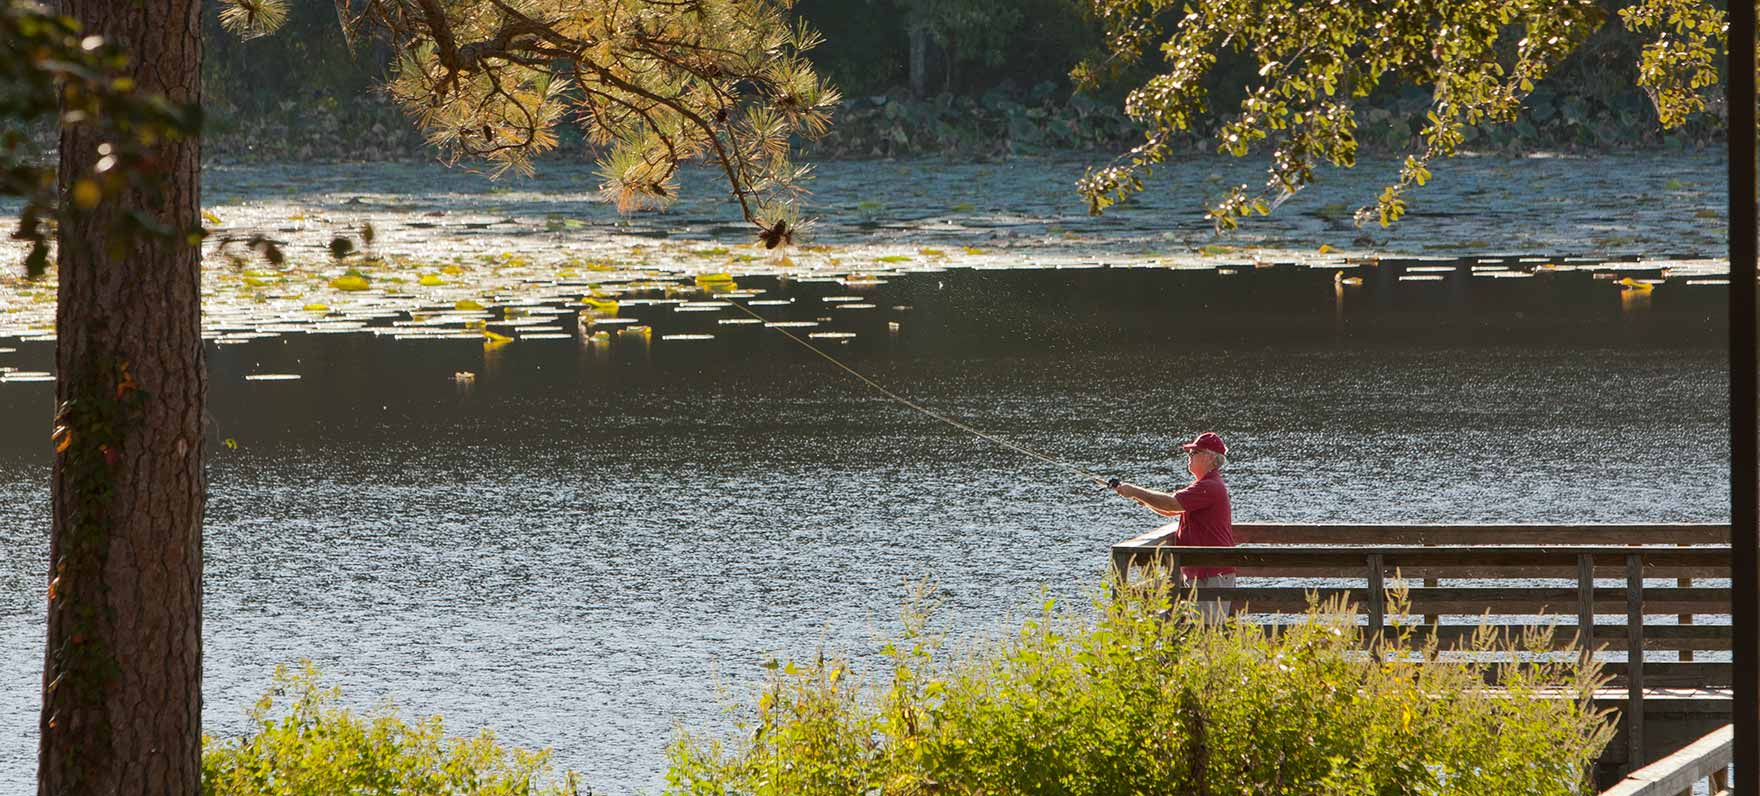 Huntsville state park texas parks wildlife department for Places to go fishing in houston